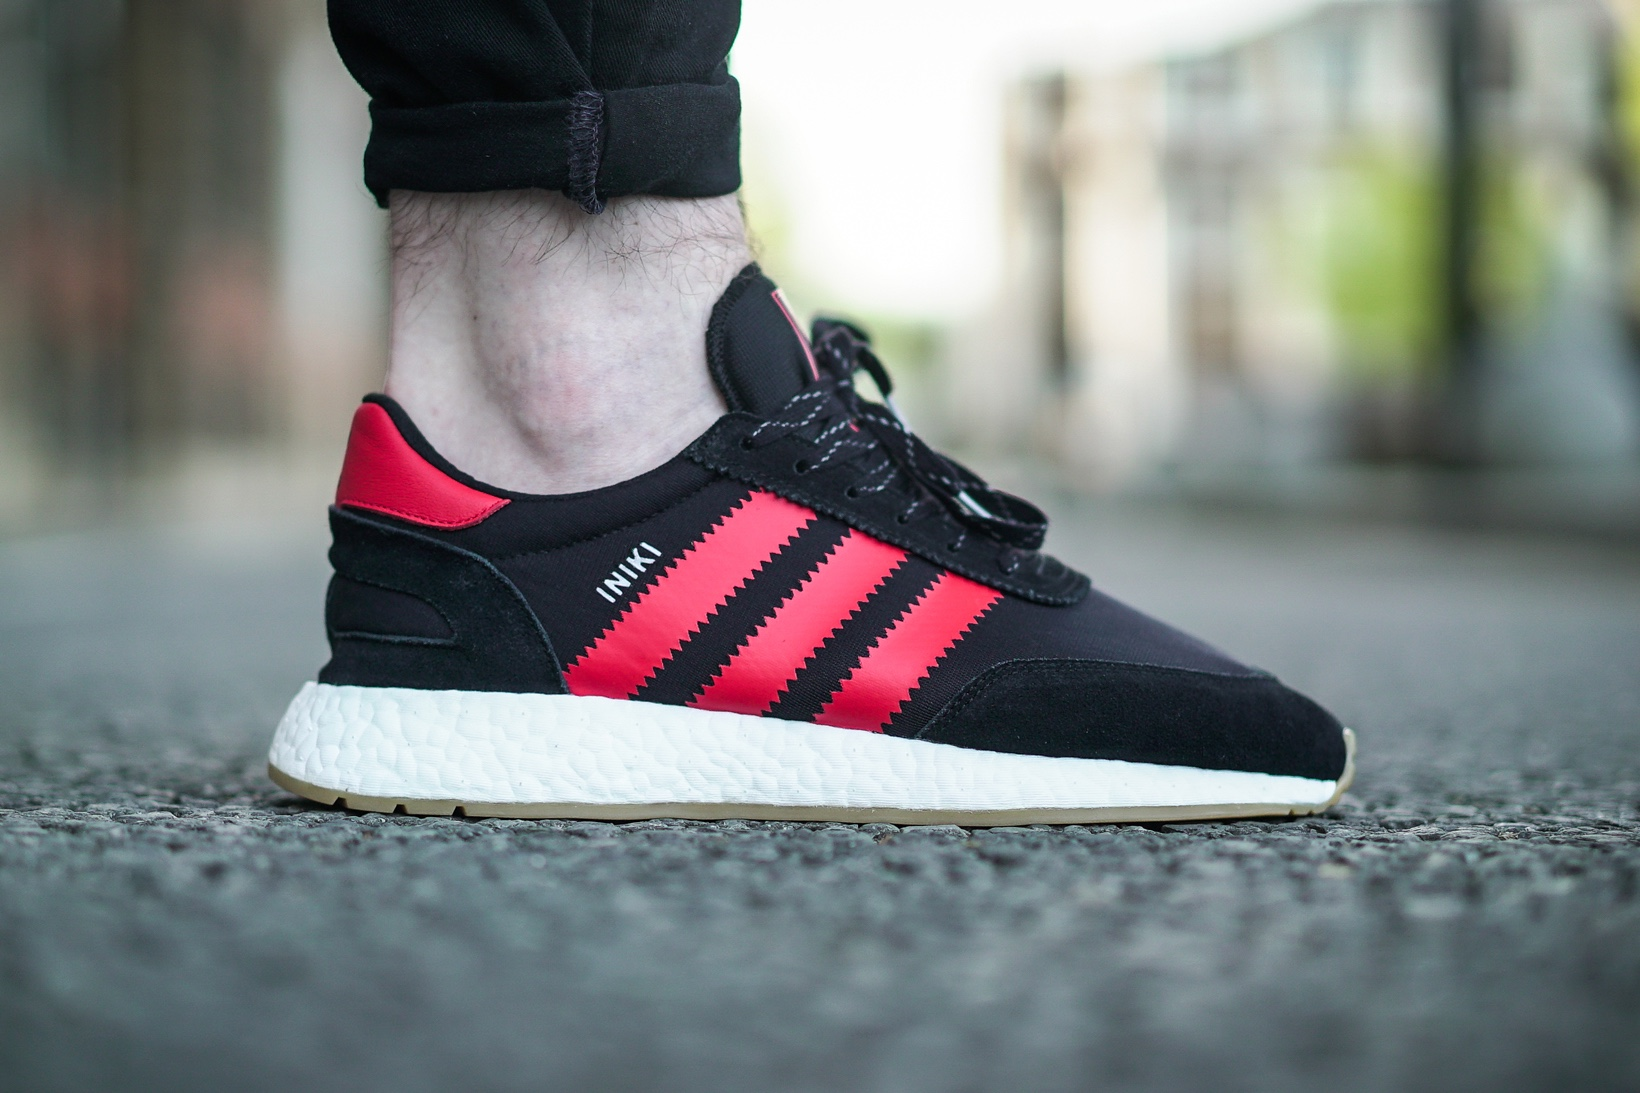 adidas Iniki Runner London exclusive